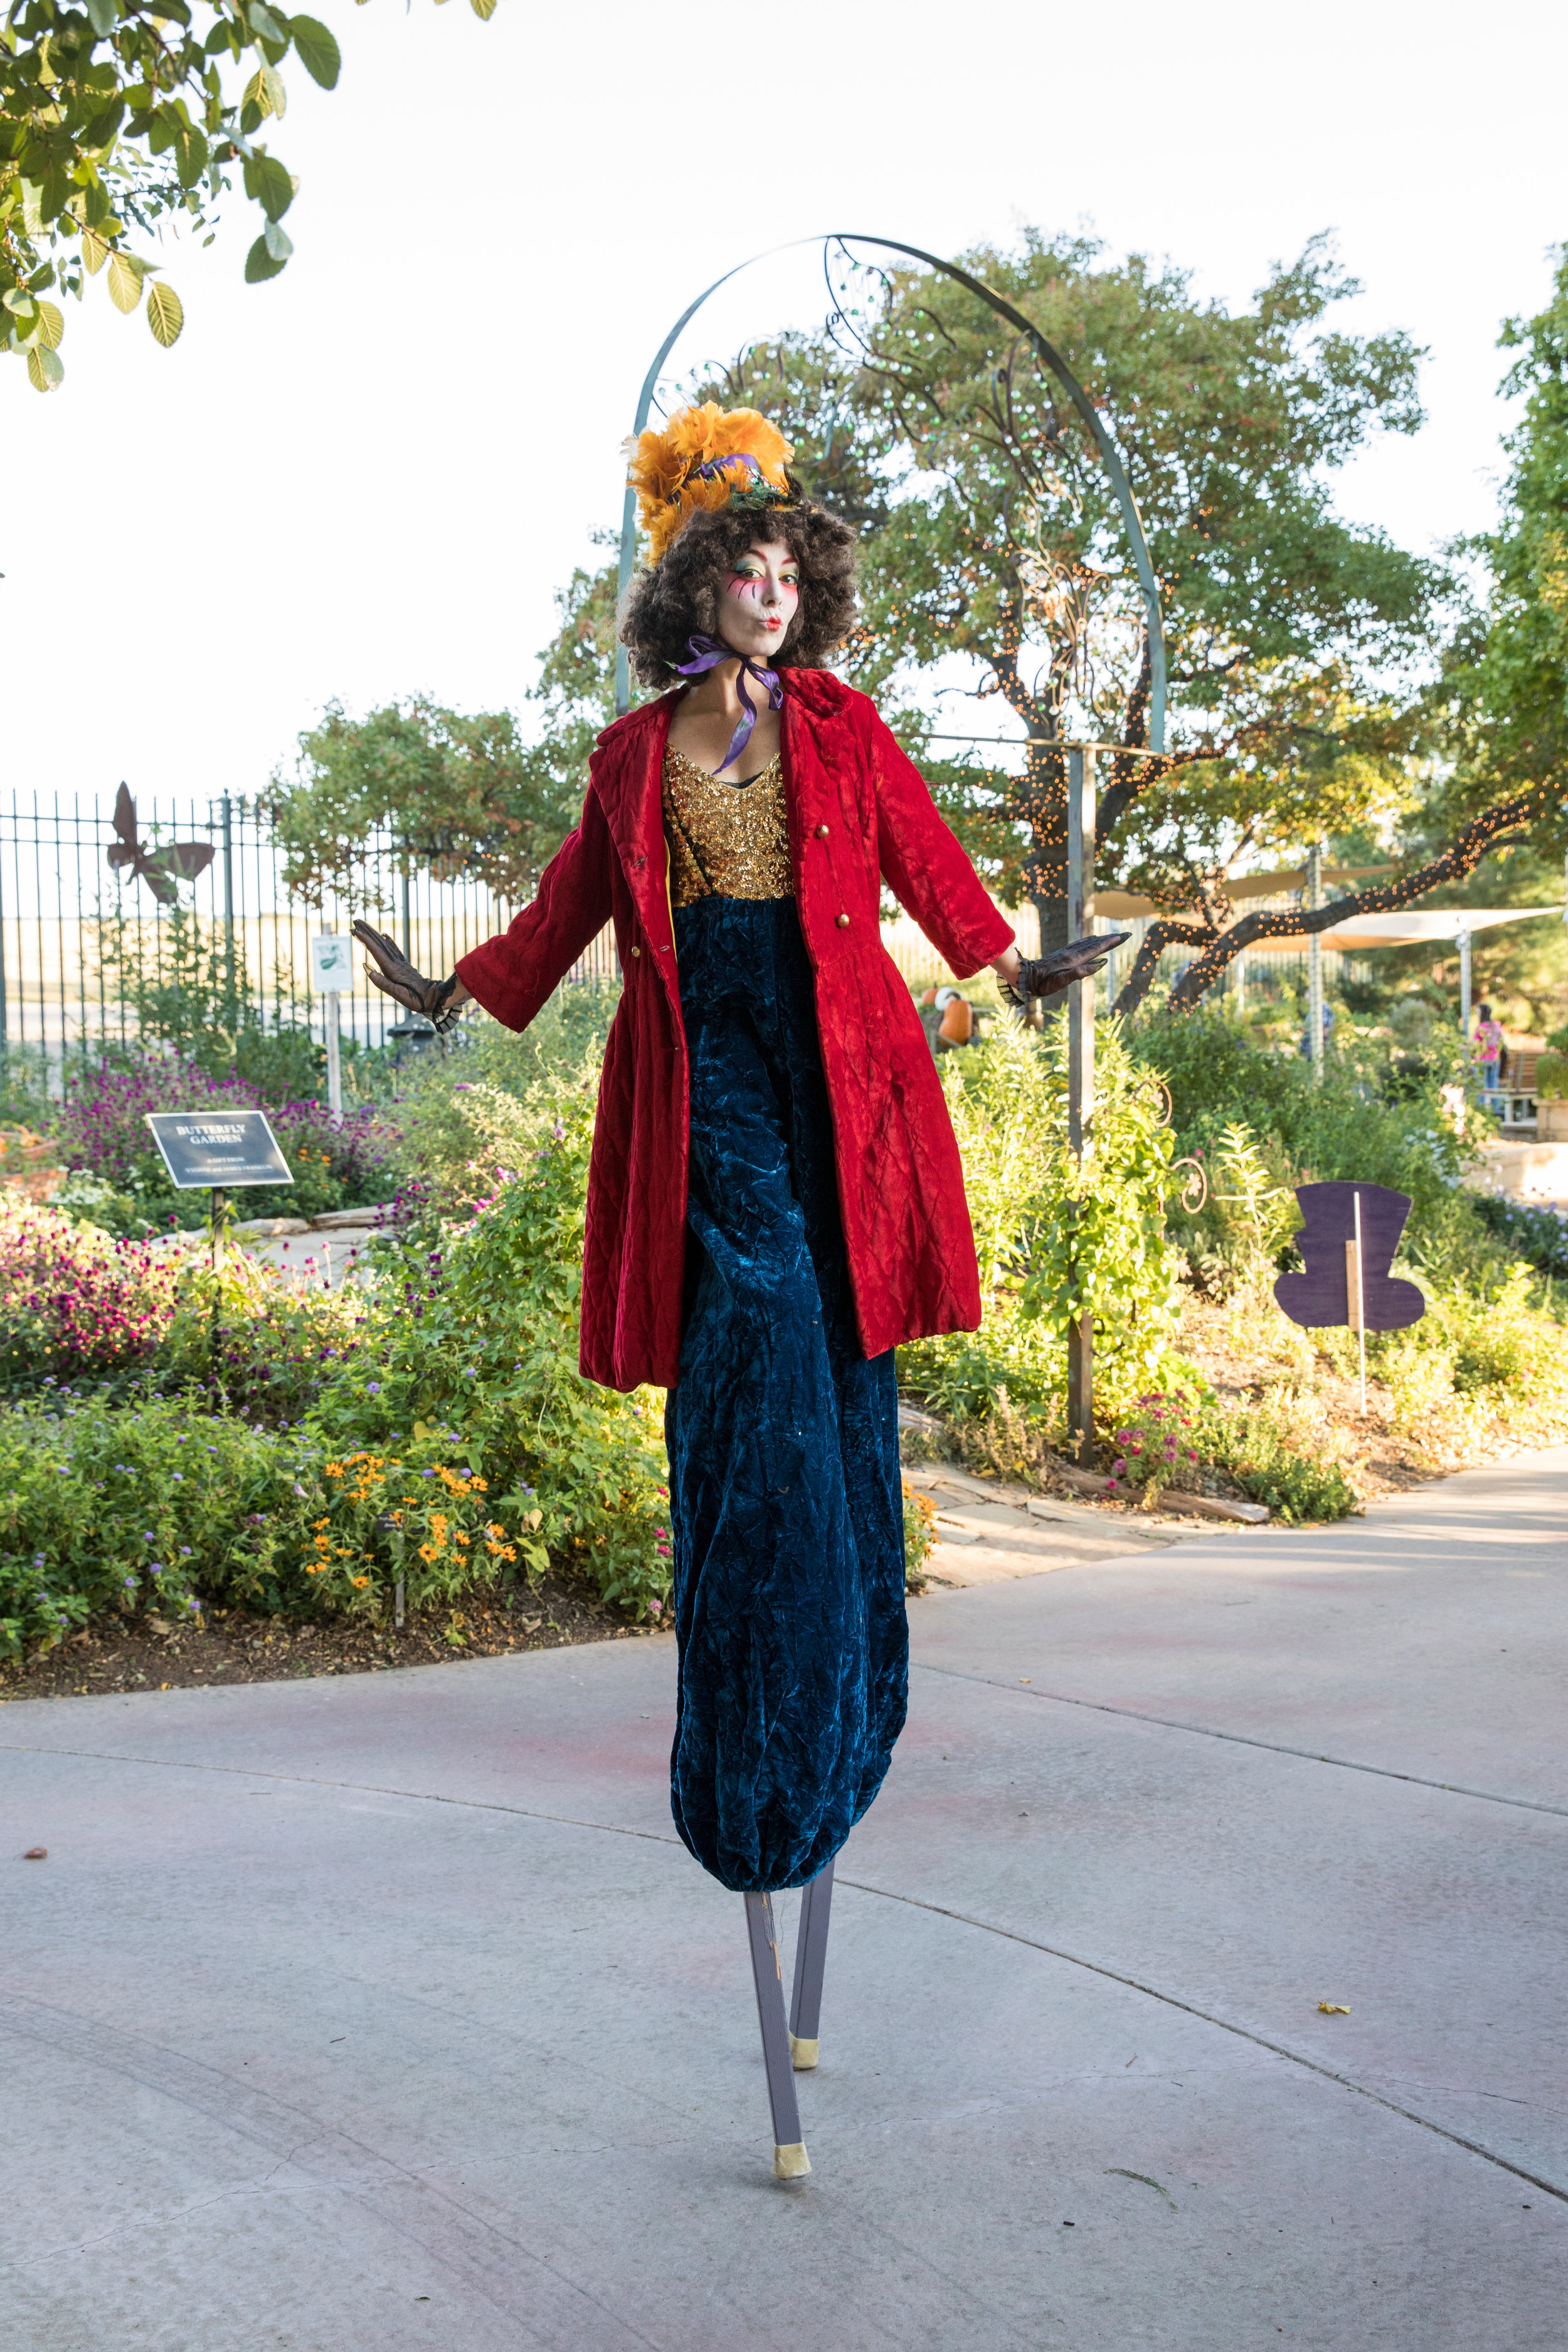 Entertainment at the Mad Hatter's Ball at Amarillo Botanical Gardens, photographed by jenny Edwards Photo